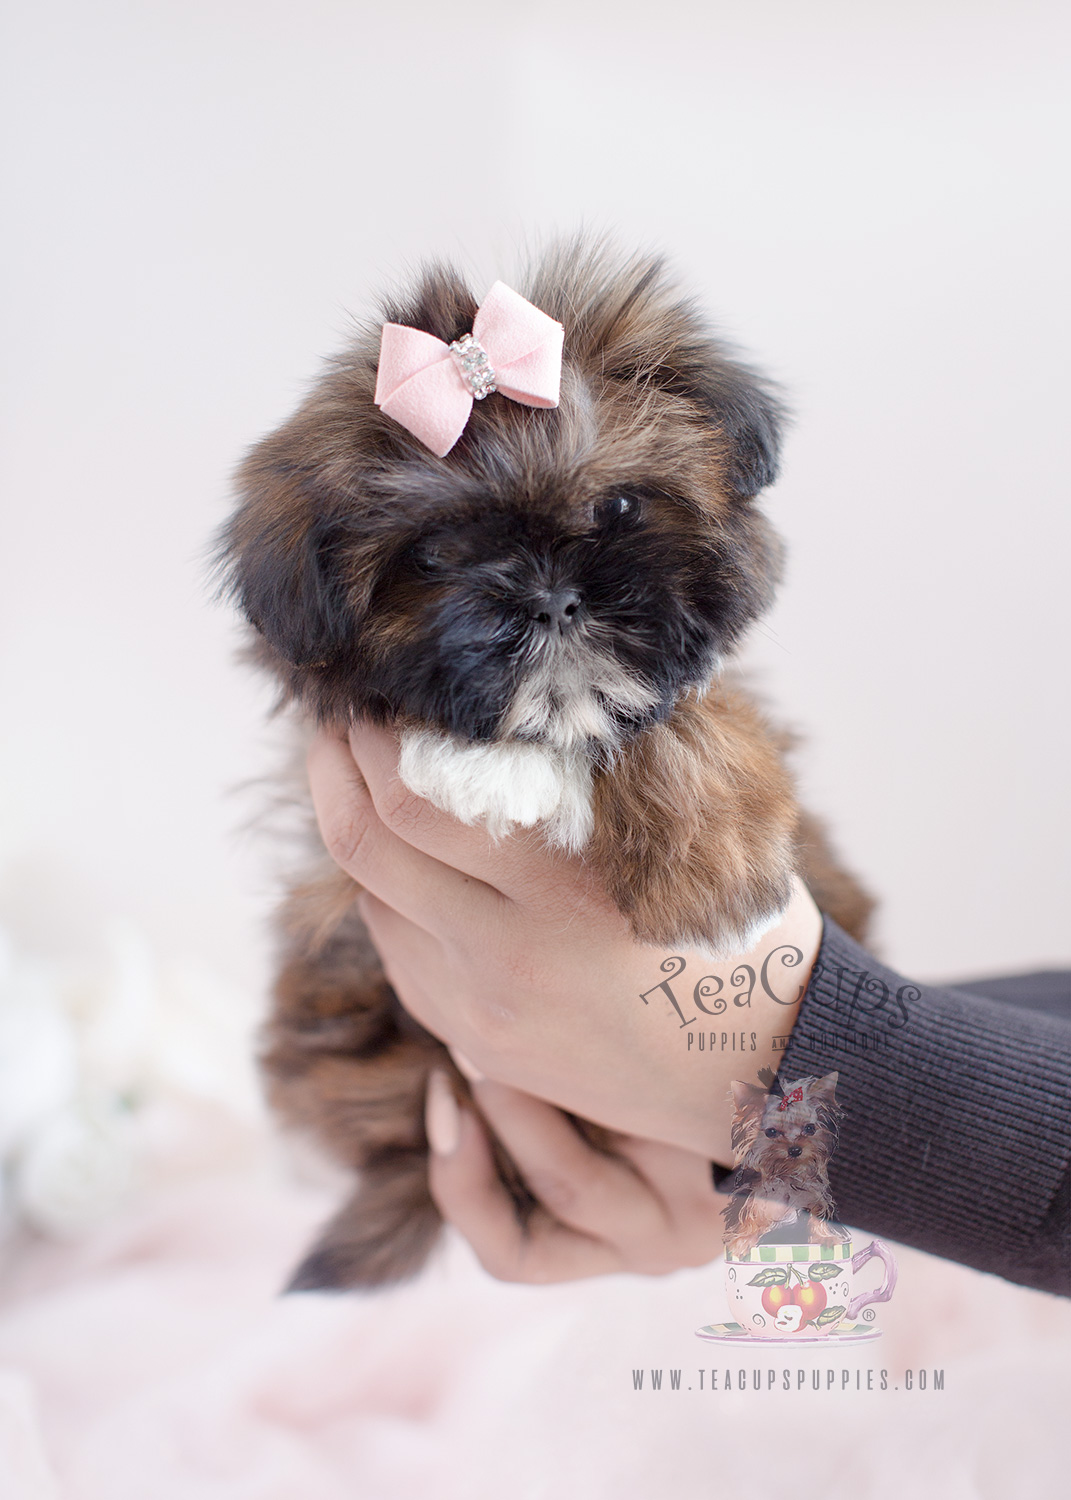 Beautiful Shih Tzu puppy for sale #038